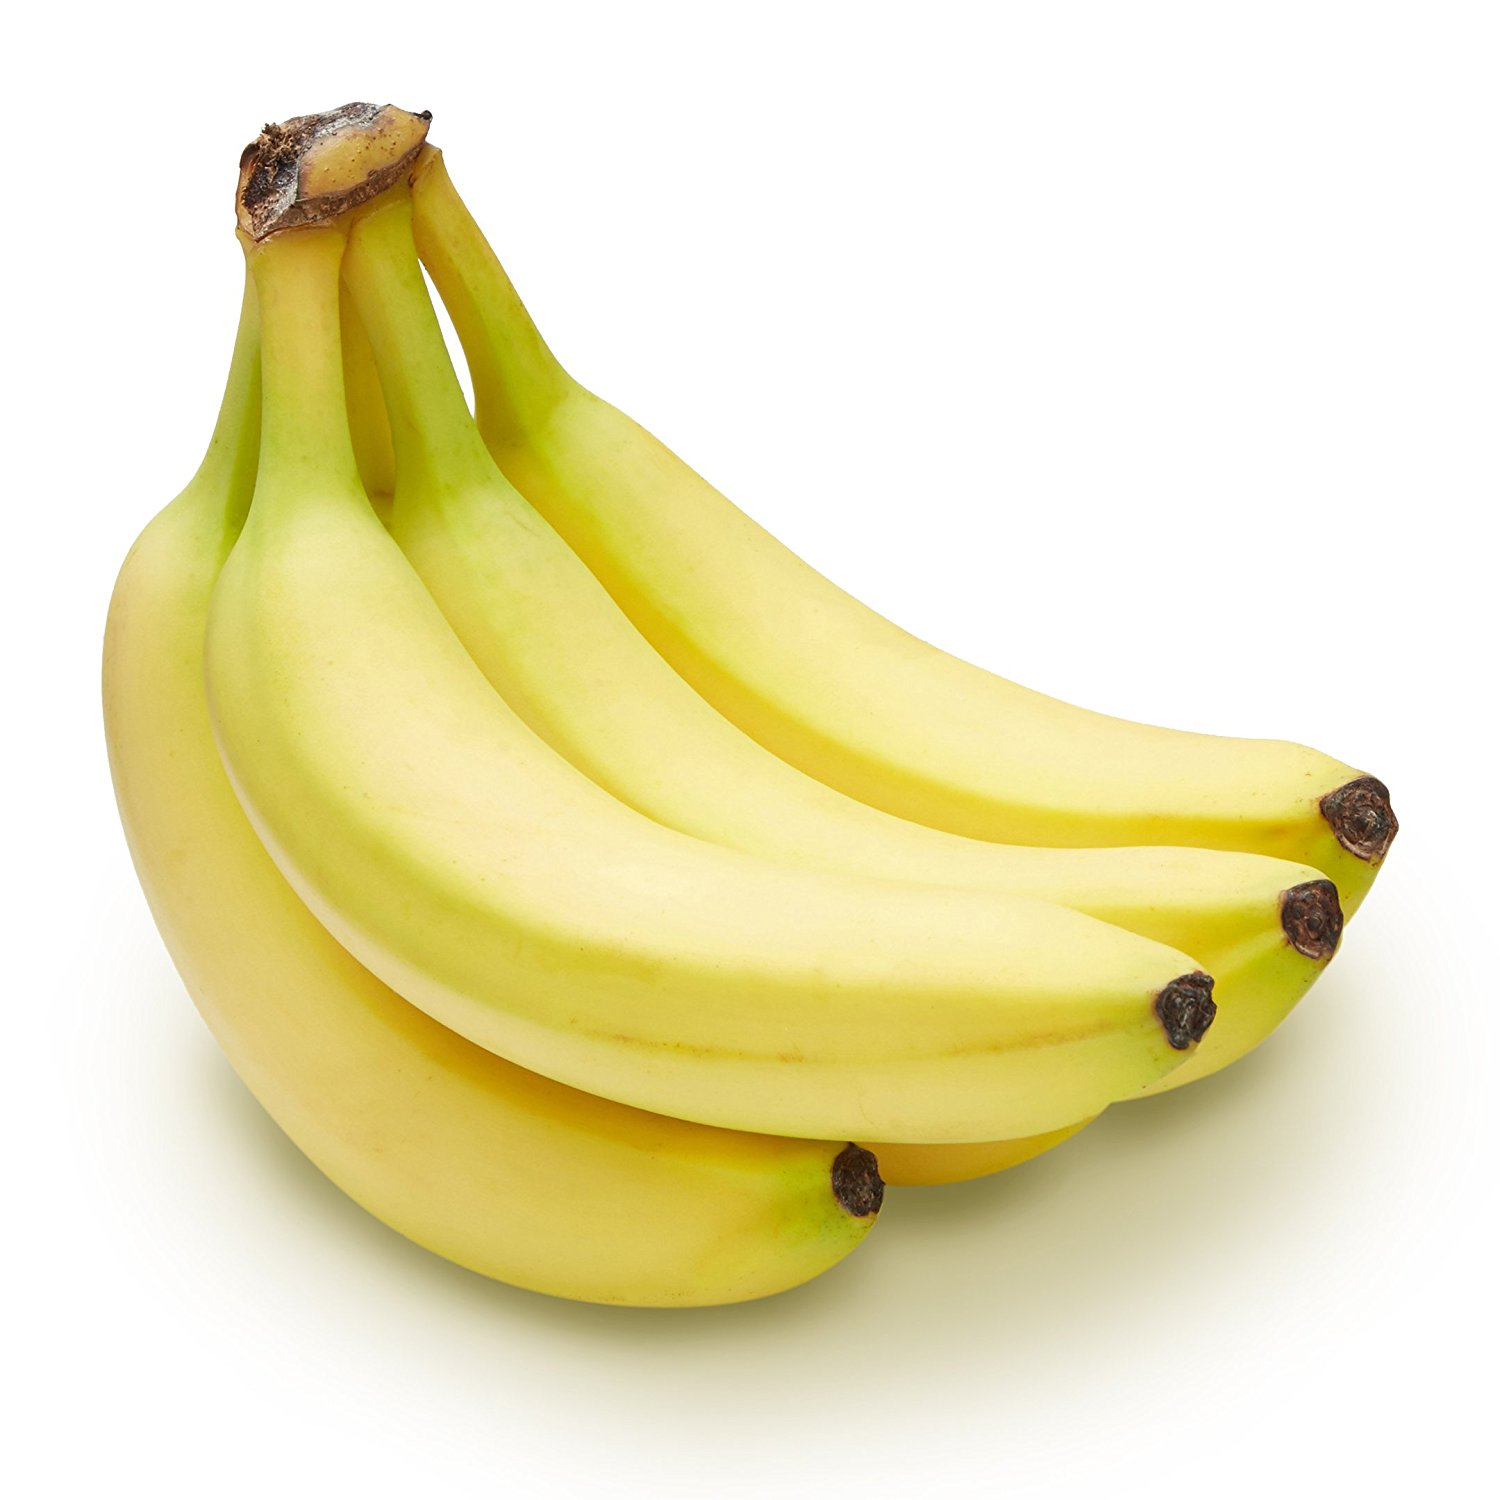 Bananas, 1 bunch (min. 5 ct.): Amazon.com: Grocery & Gourmet Food